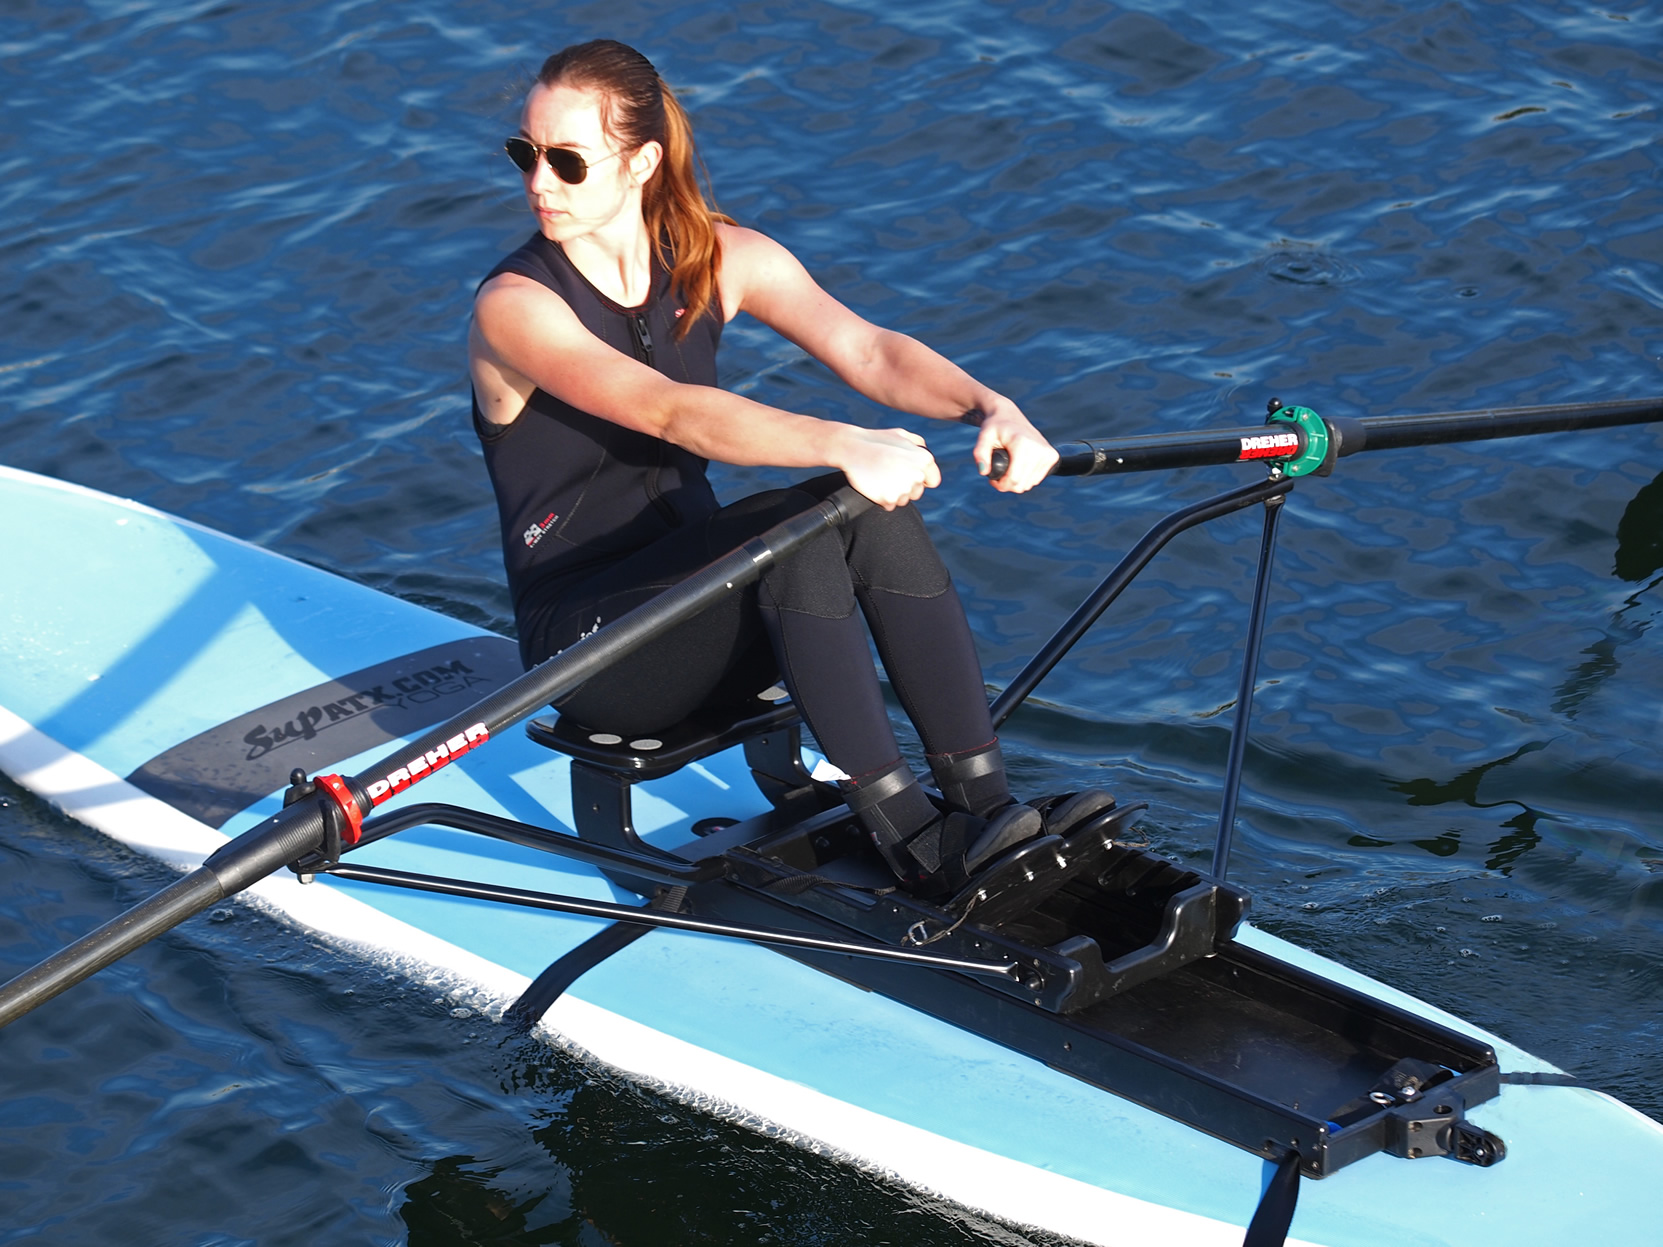 katie-oar-board-stand-up-paddle-board-rower-whitehall-rowing-and-sail-1663x1247